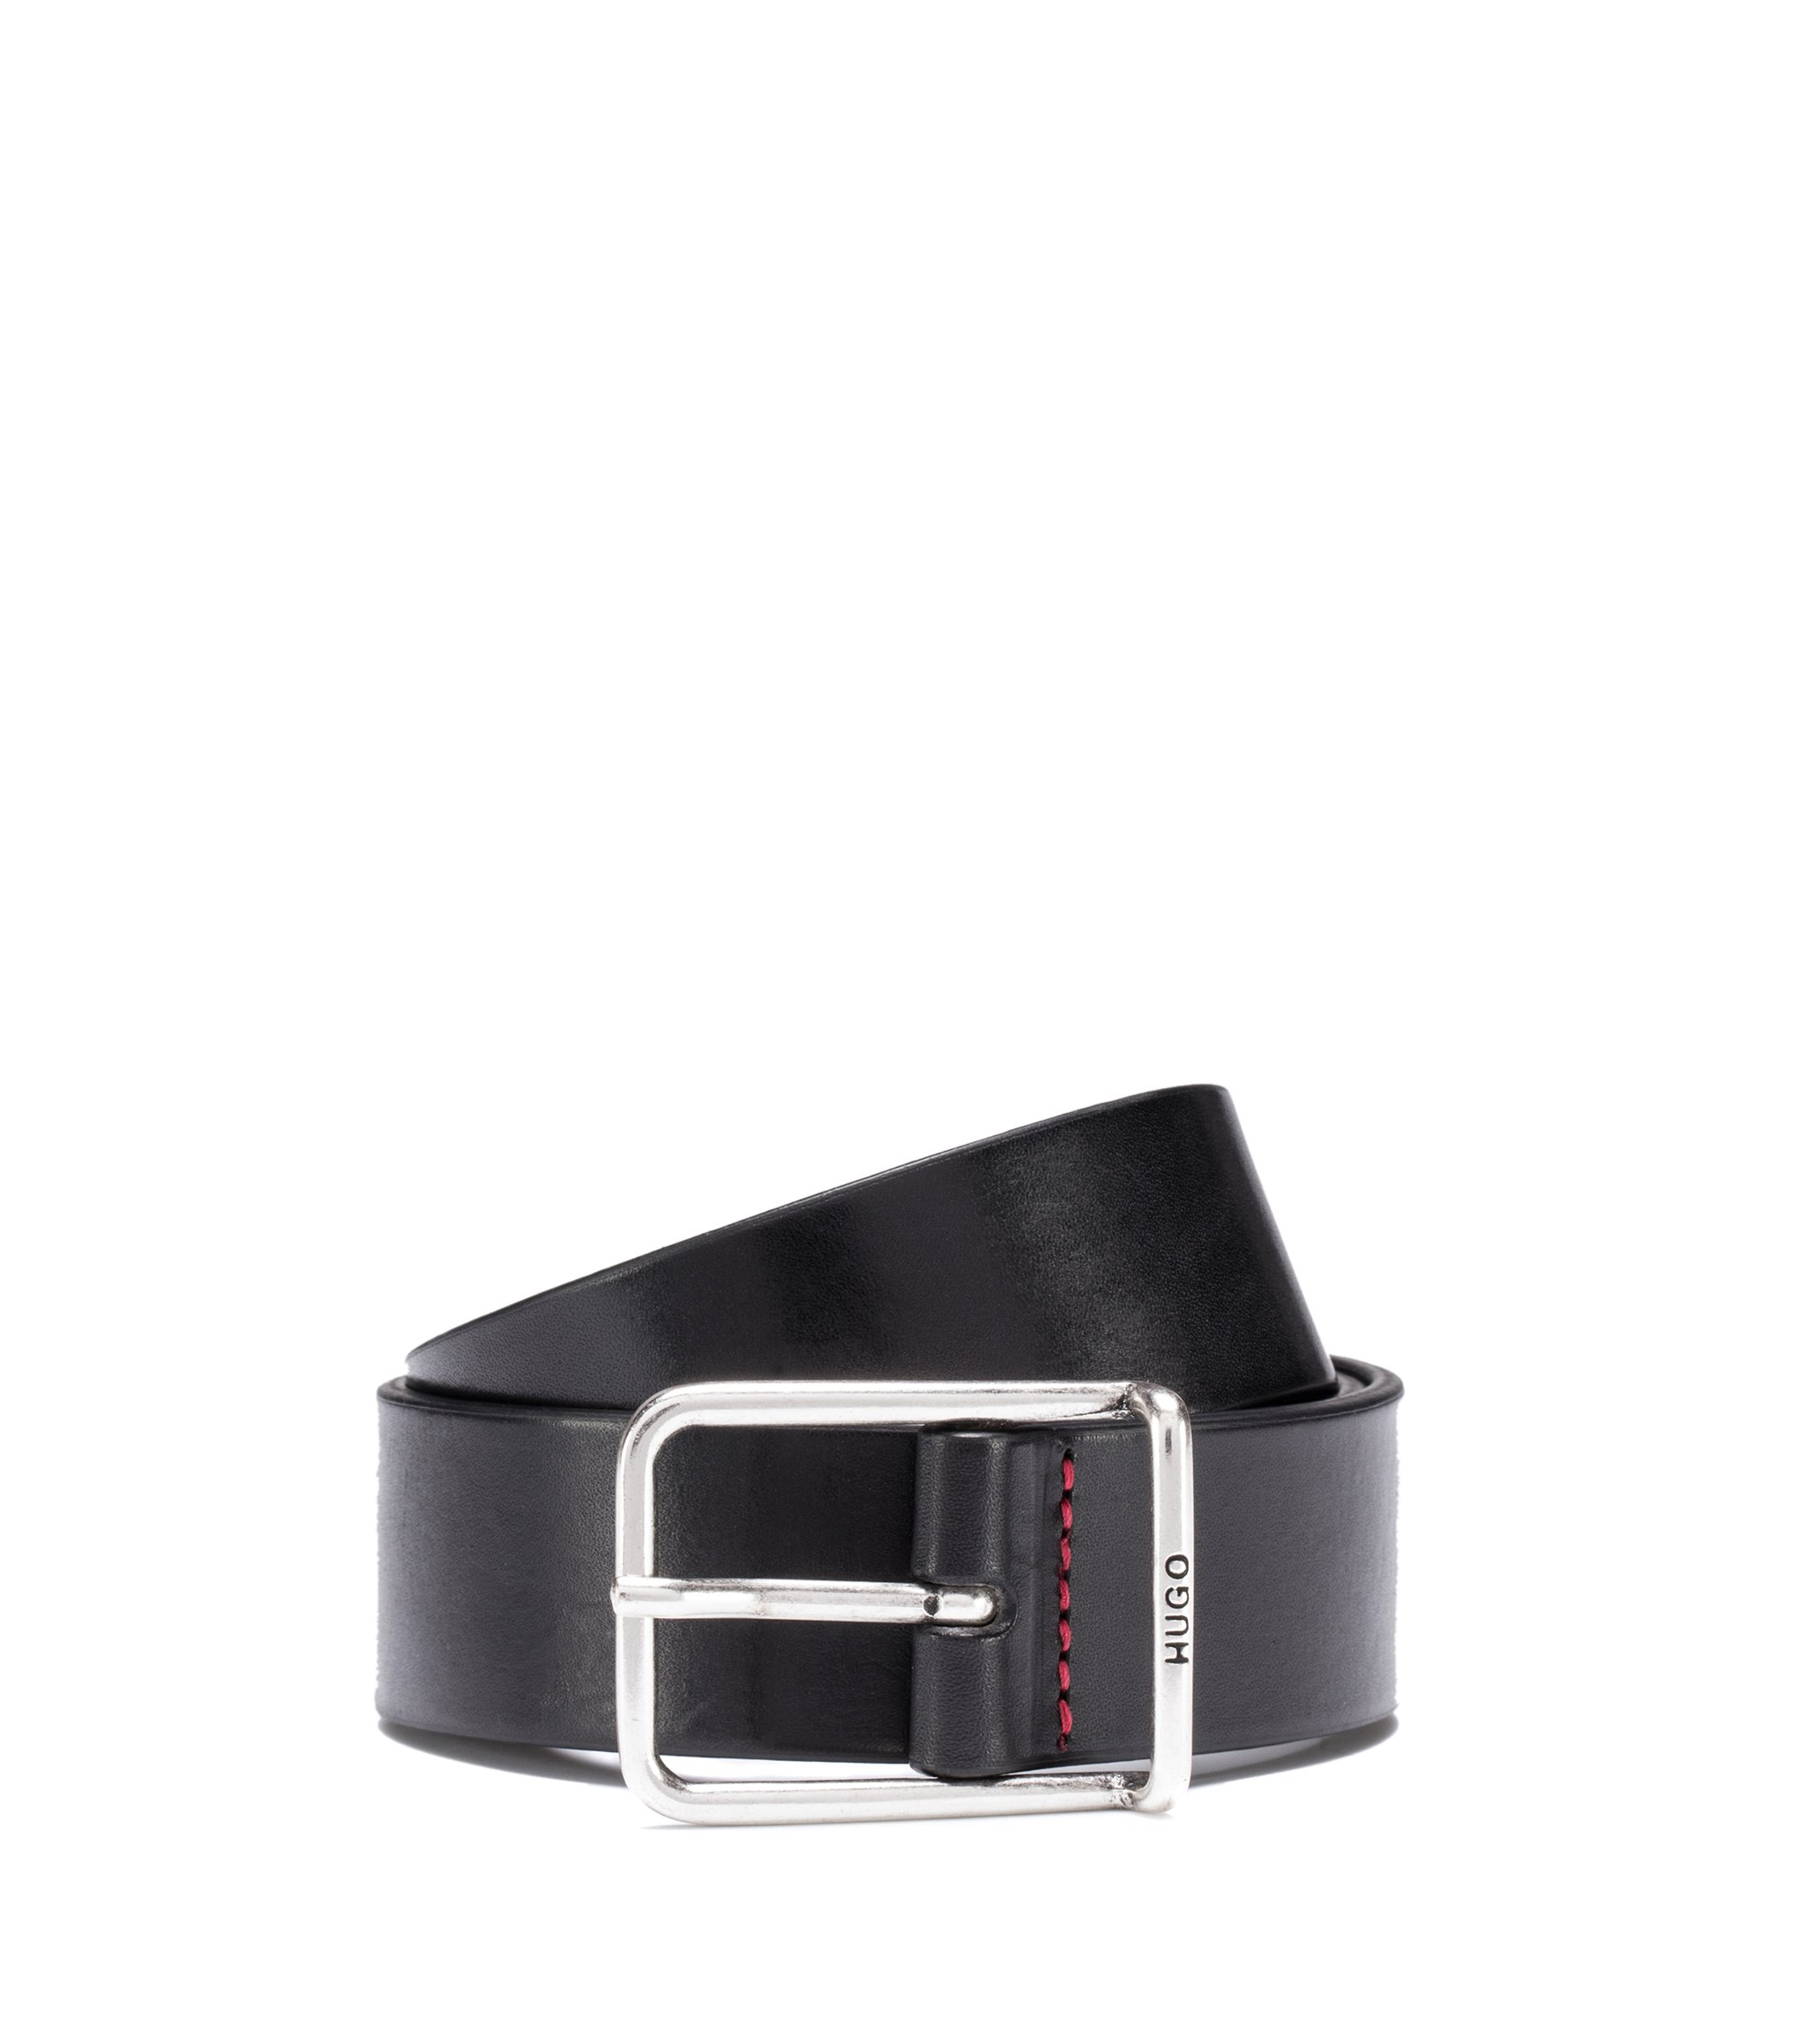 Vegetable-tanned leather belt with rounded silver-tone hardware, Black